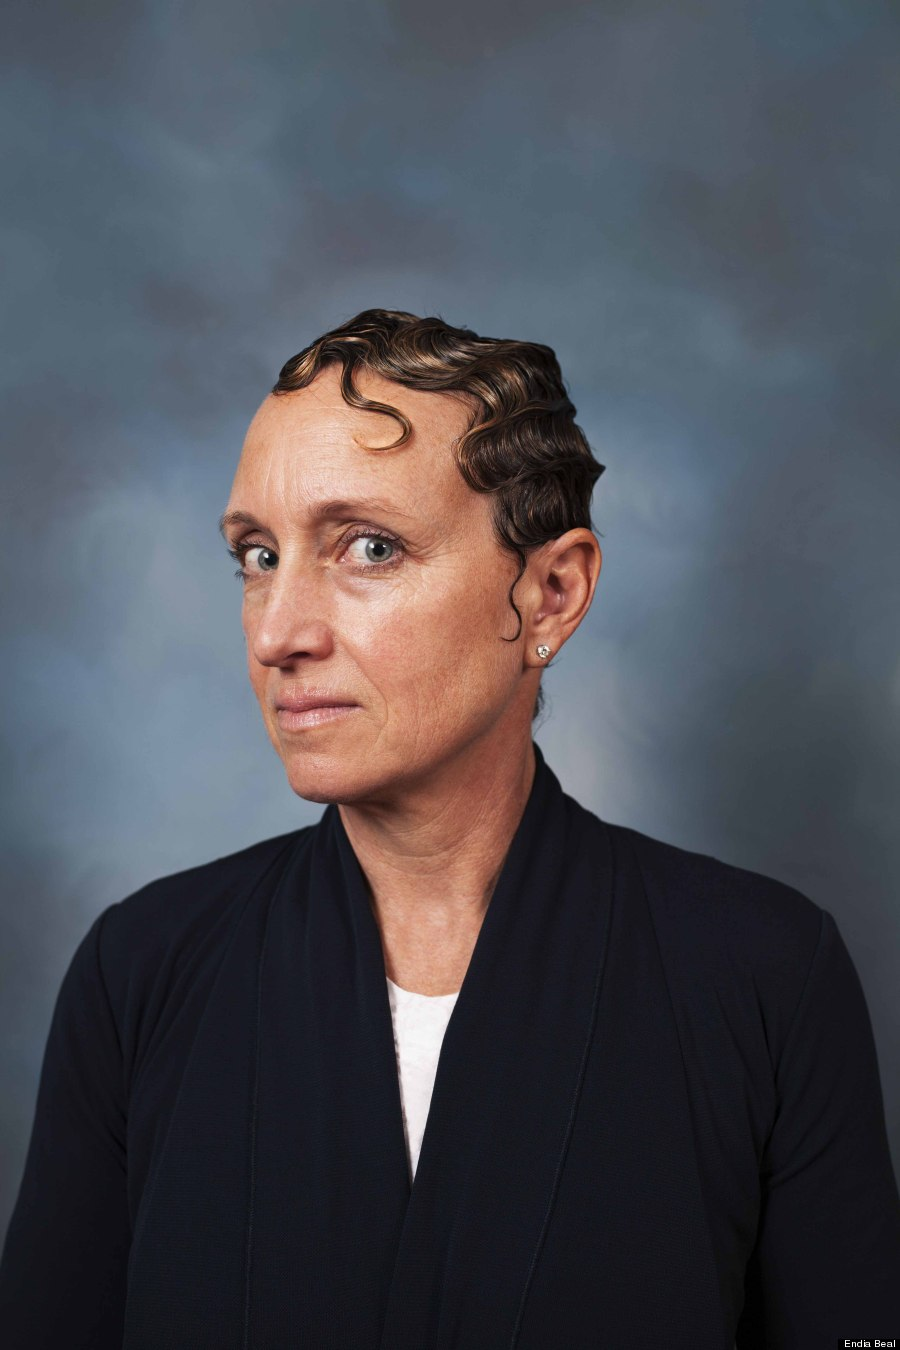 White Women With Black Hairstyles Redefine Corporate America | HuffPost